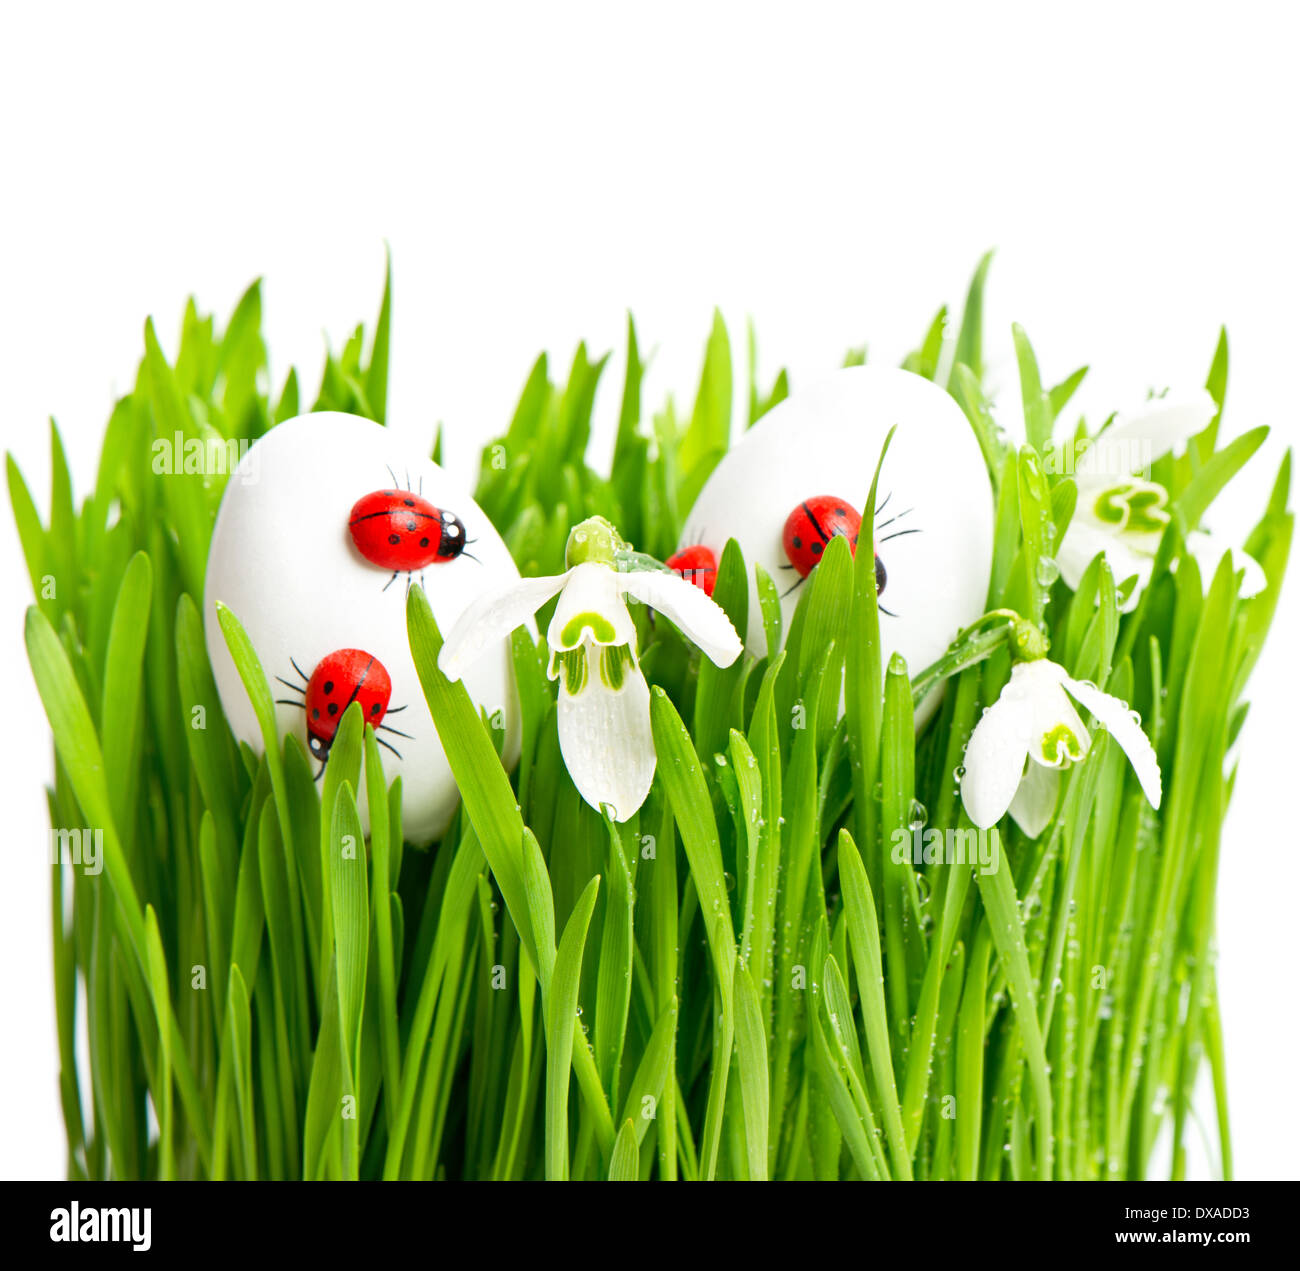 Fresh Green Grass With Flowers And Easter Eggs On White Background